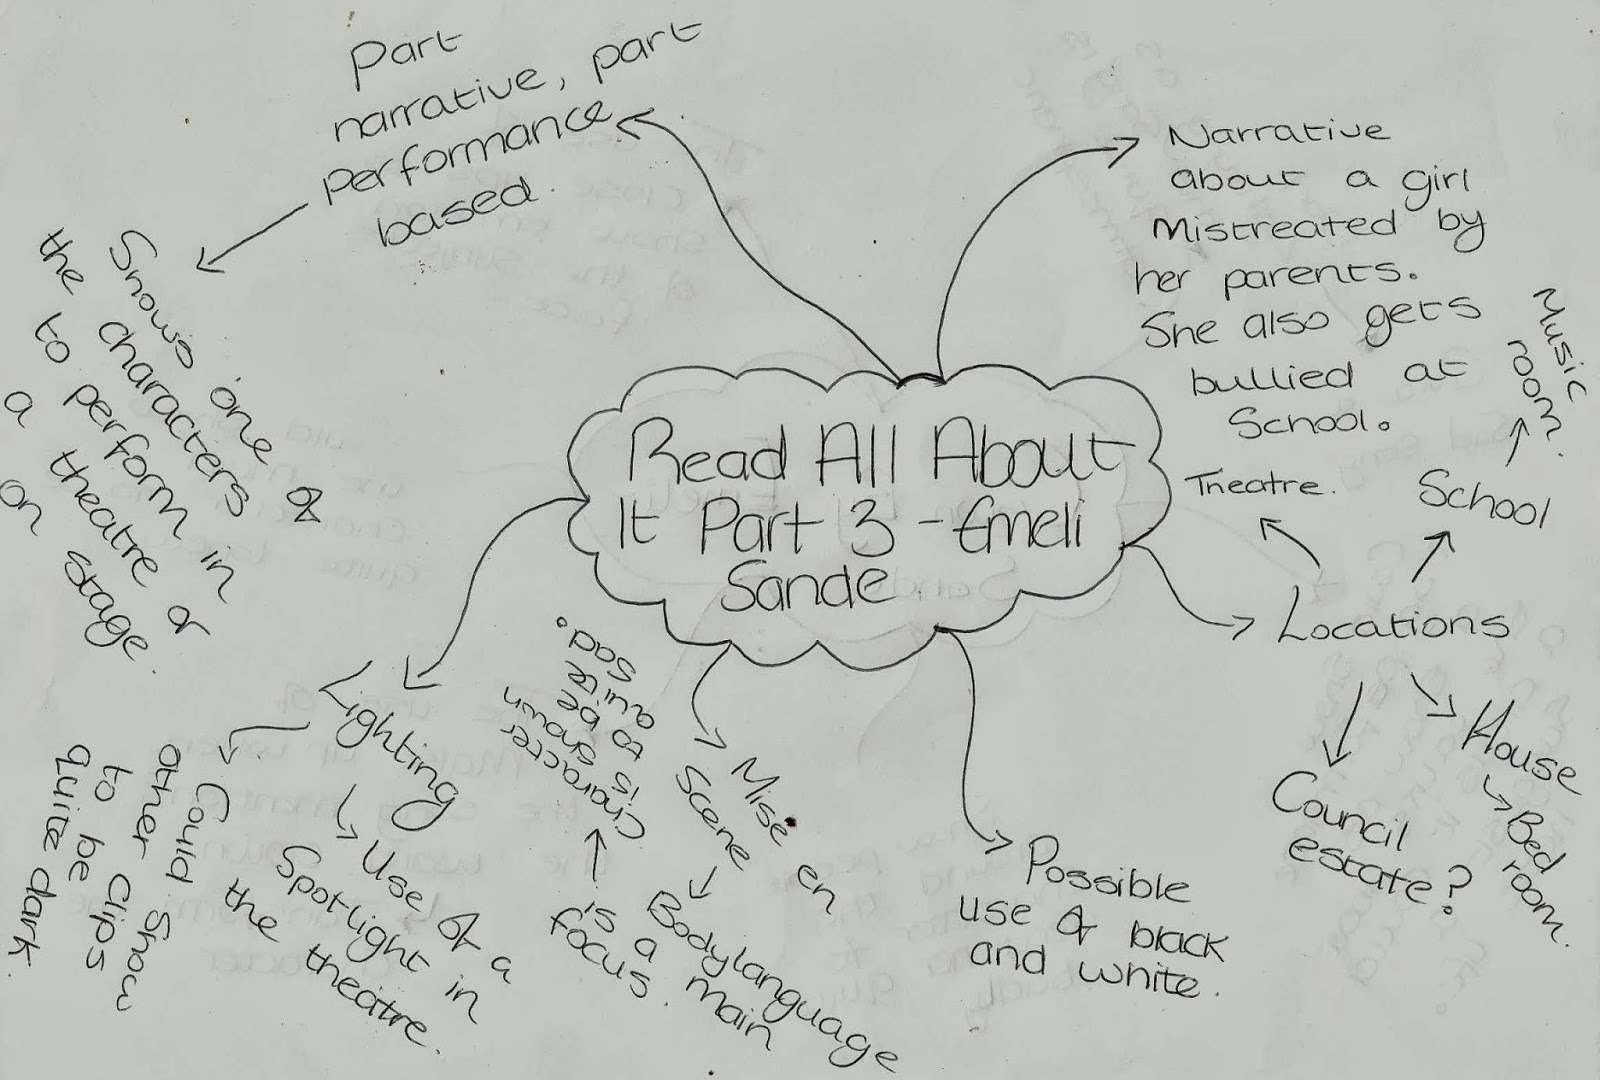 A2 Portfolio By Sian Ryley 2219: Mind mapping